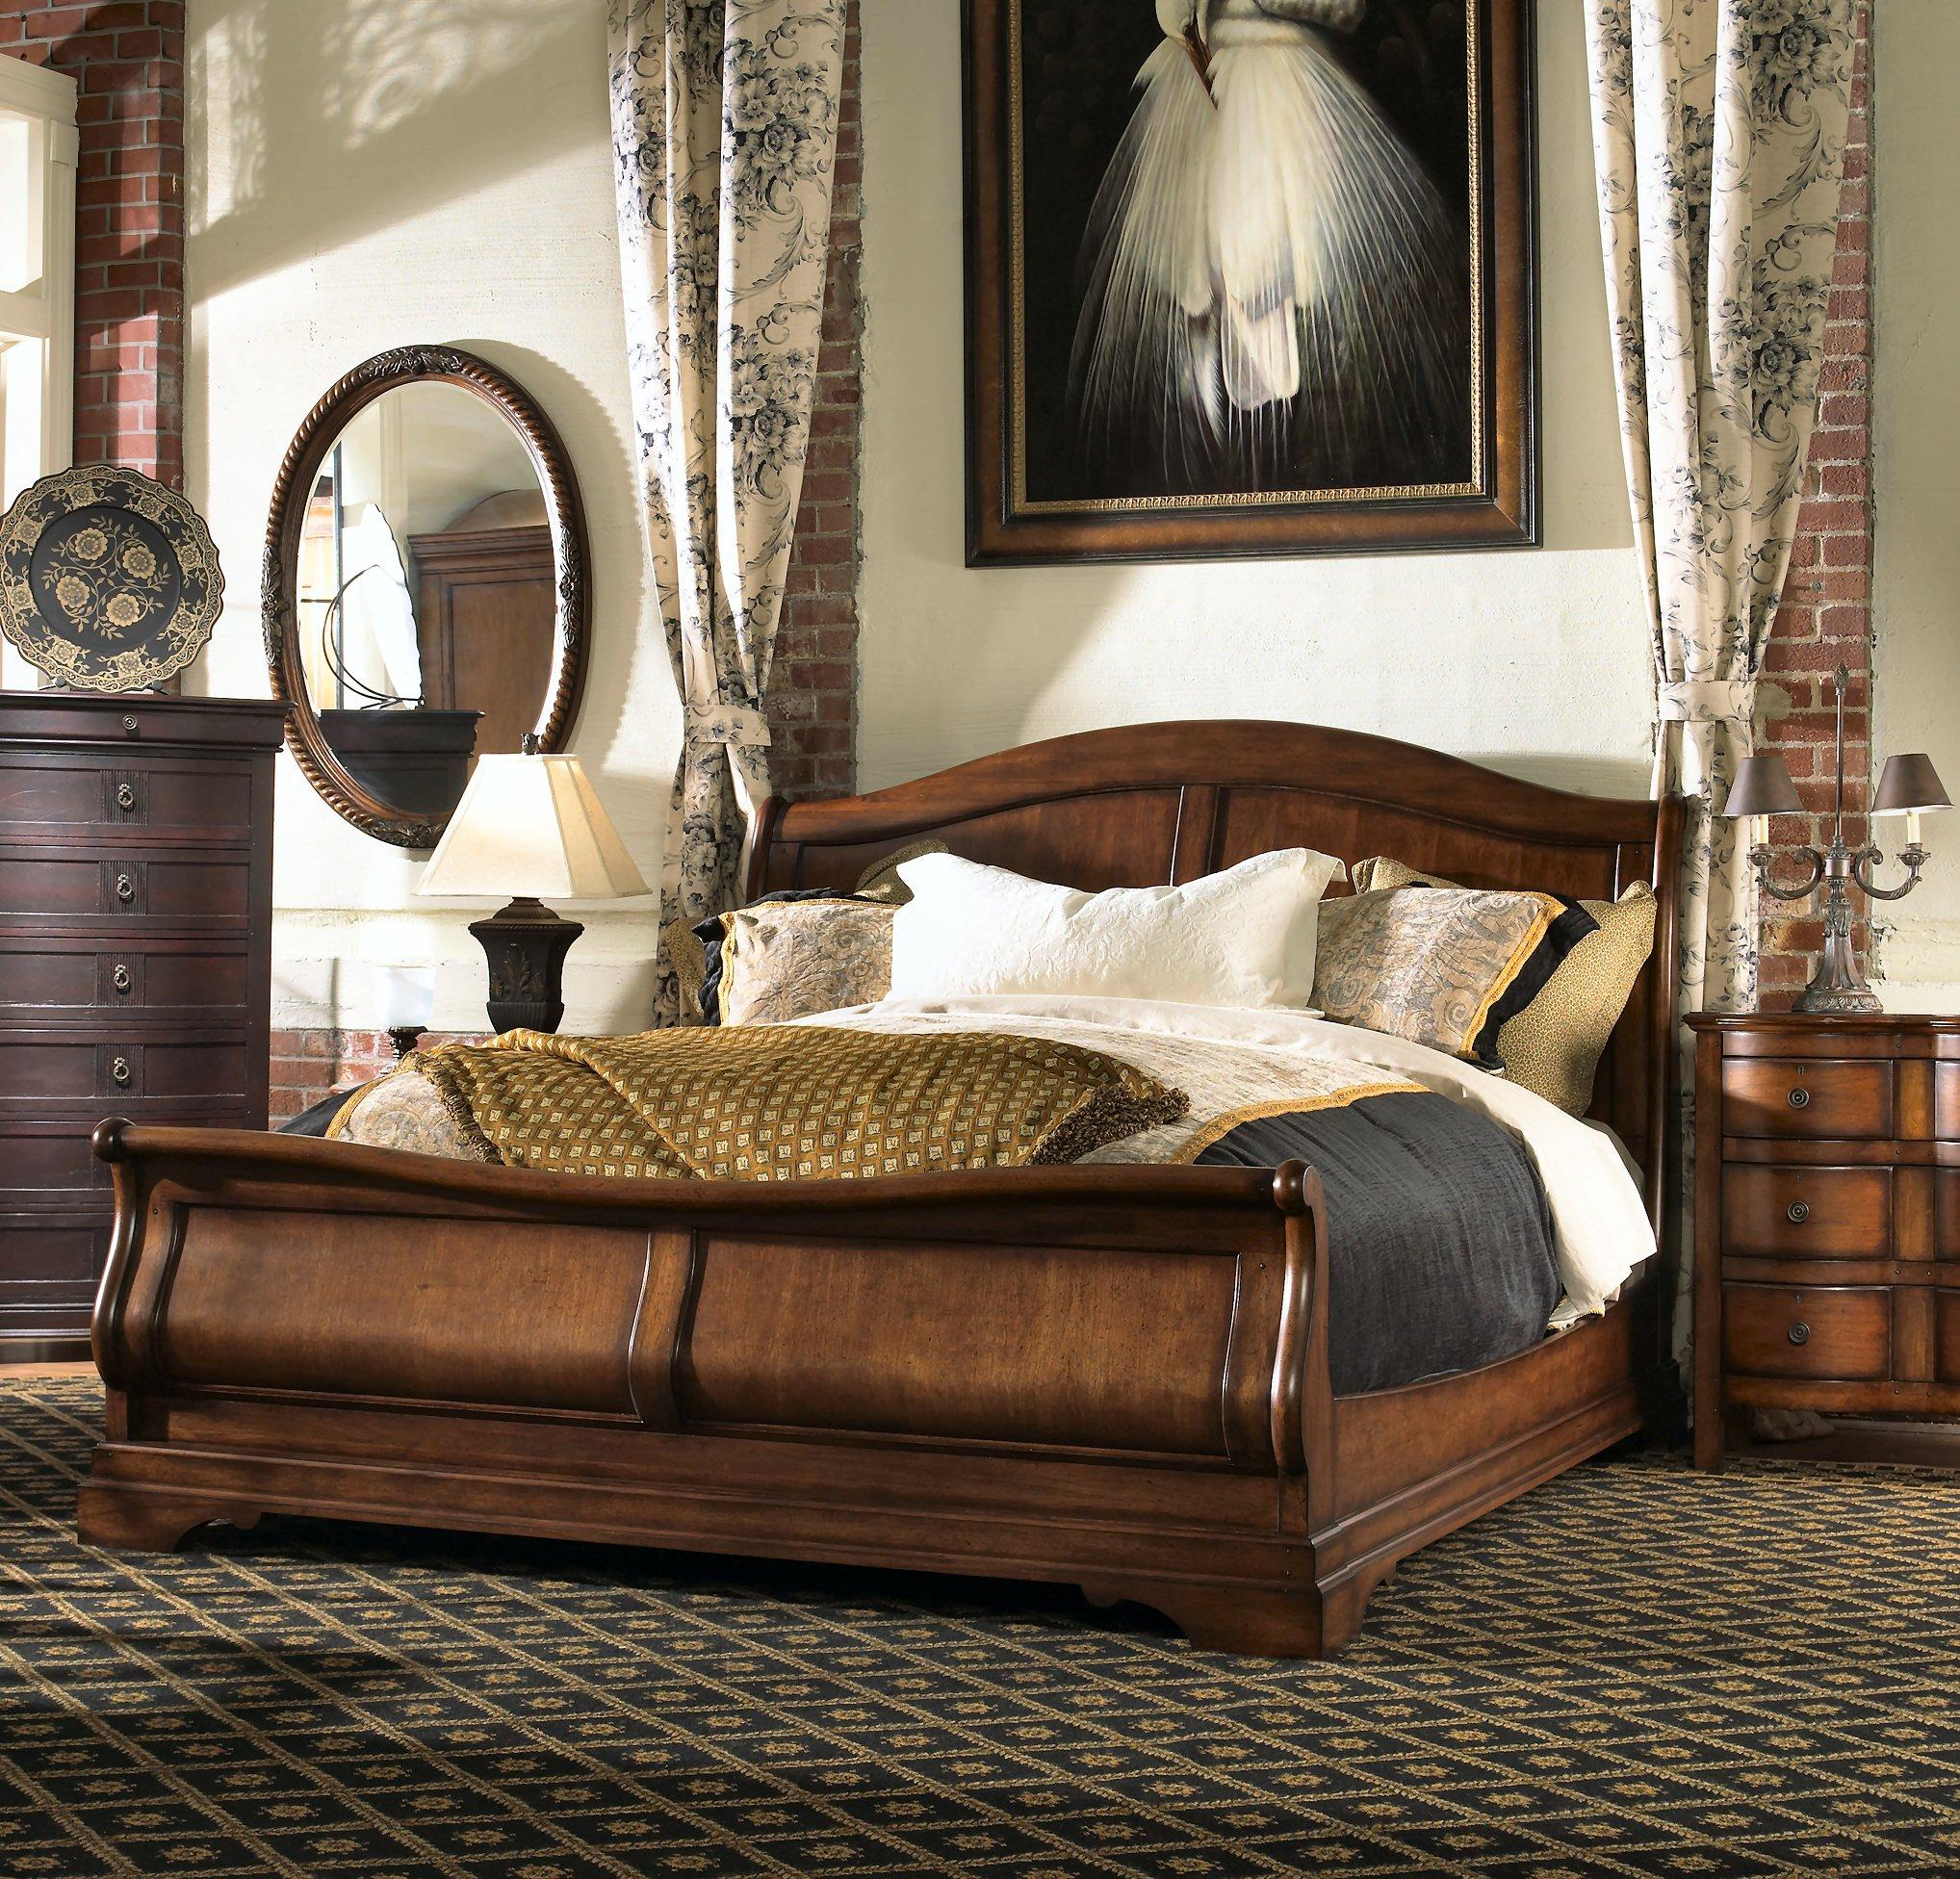 Attractive headboars king sleigh bed with royal duvet cover and luxury sheets also unique area rug above laminate flooring ideas